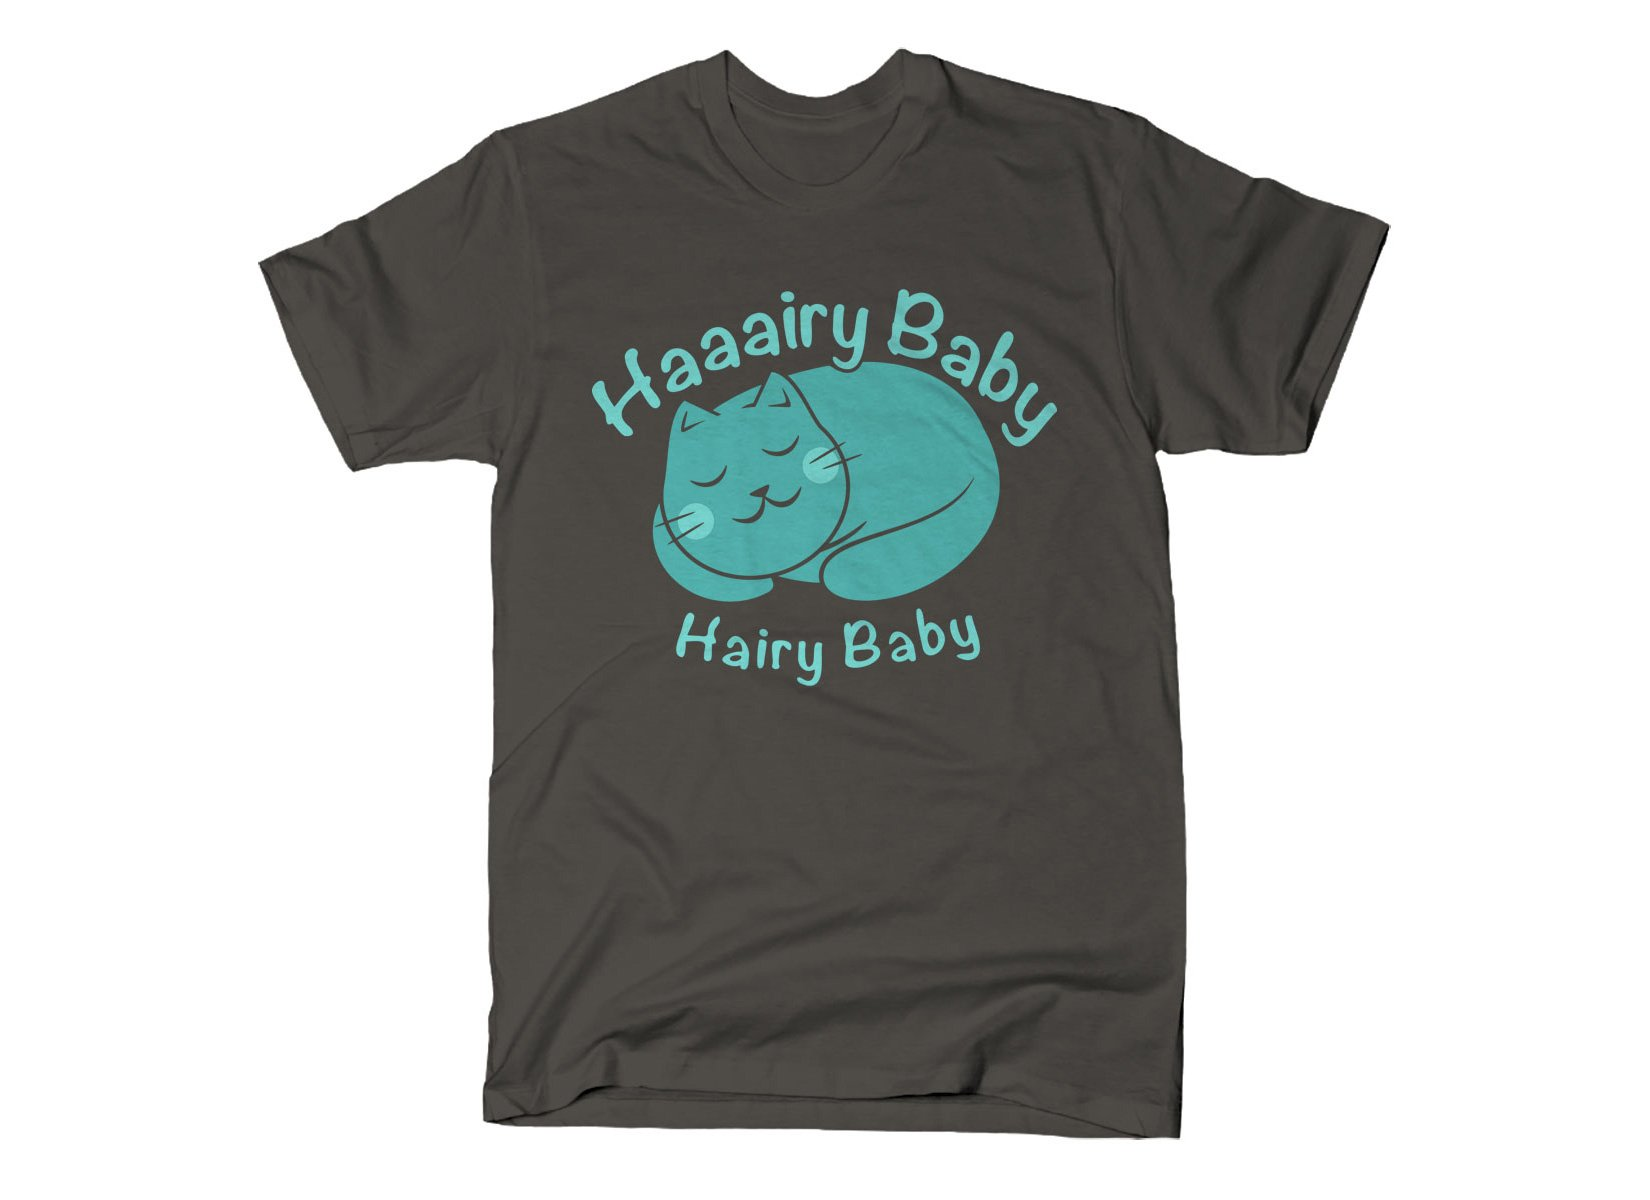 Hairy Baby on Mens T-Shirt